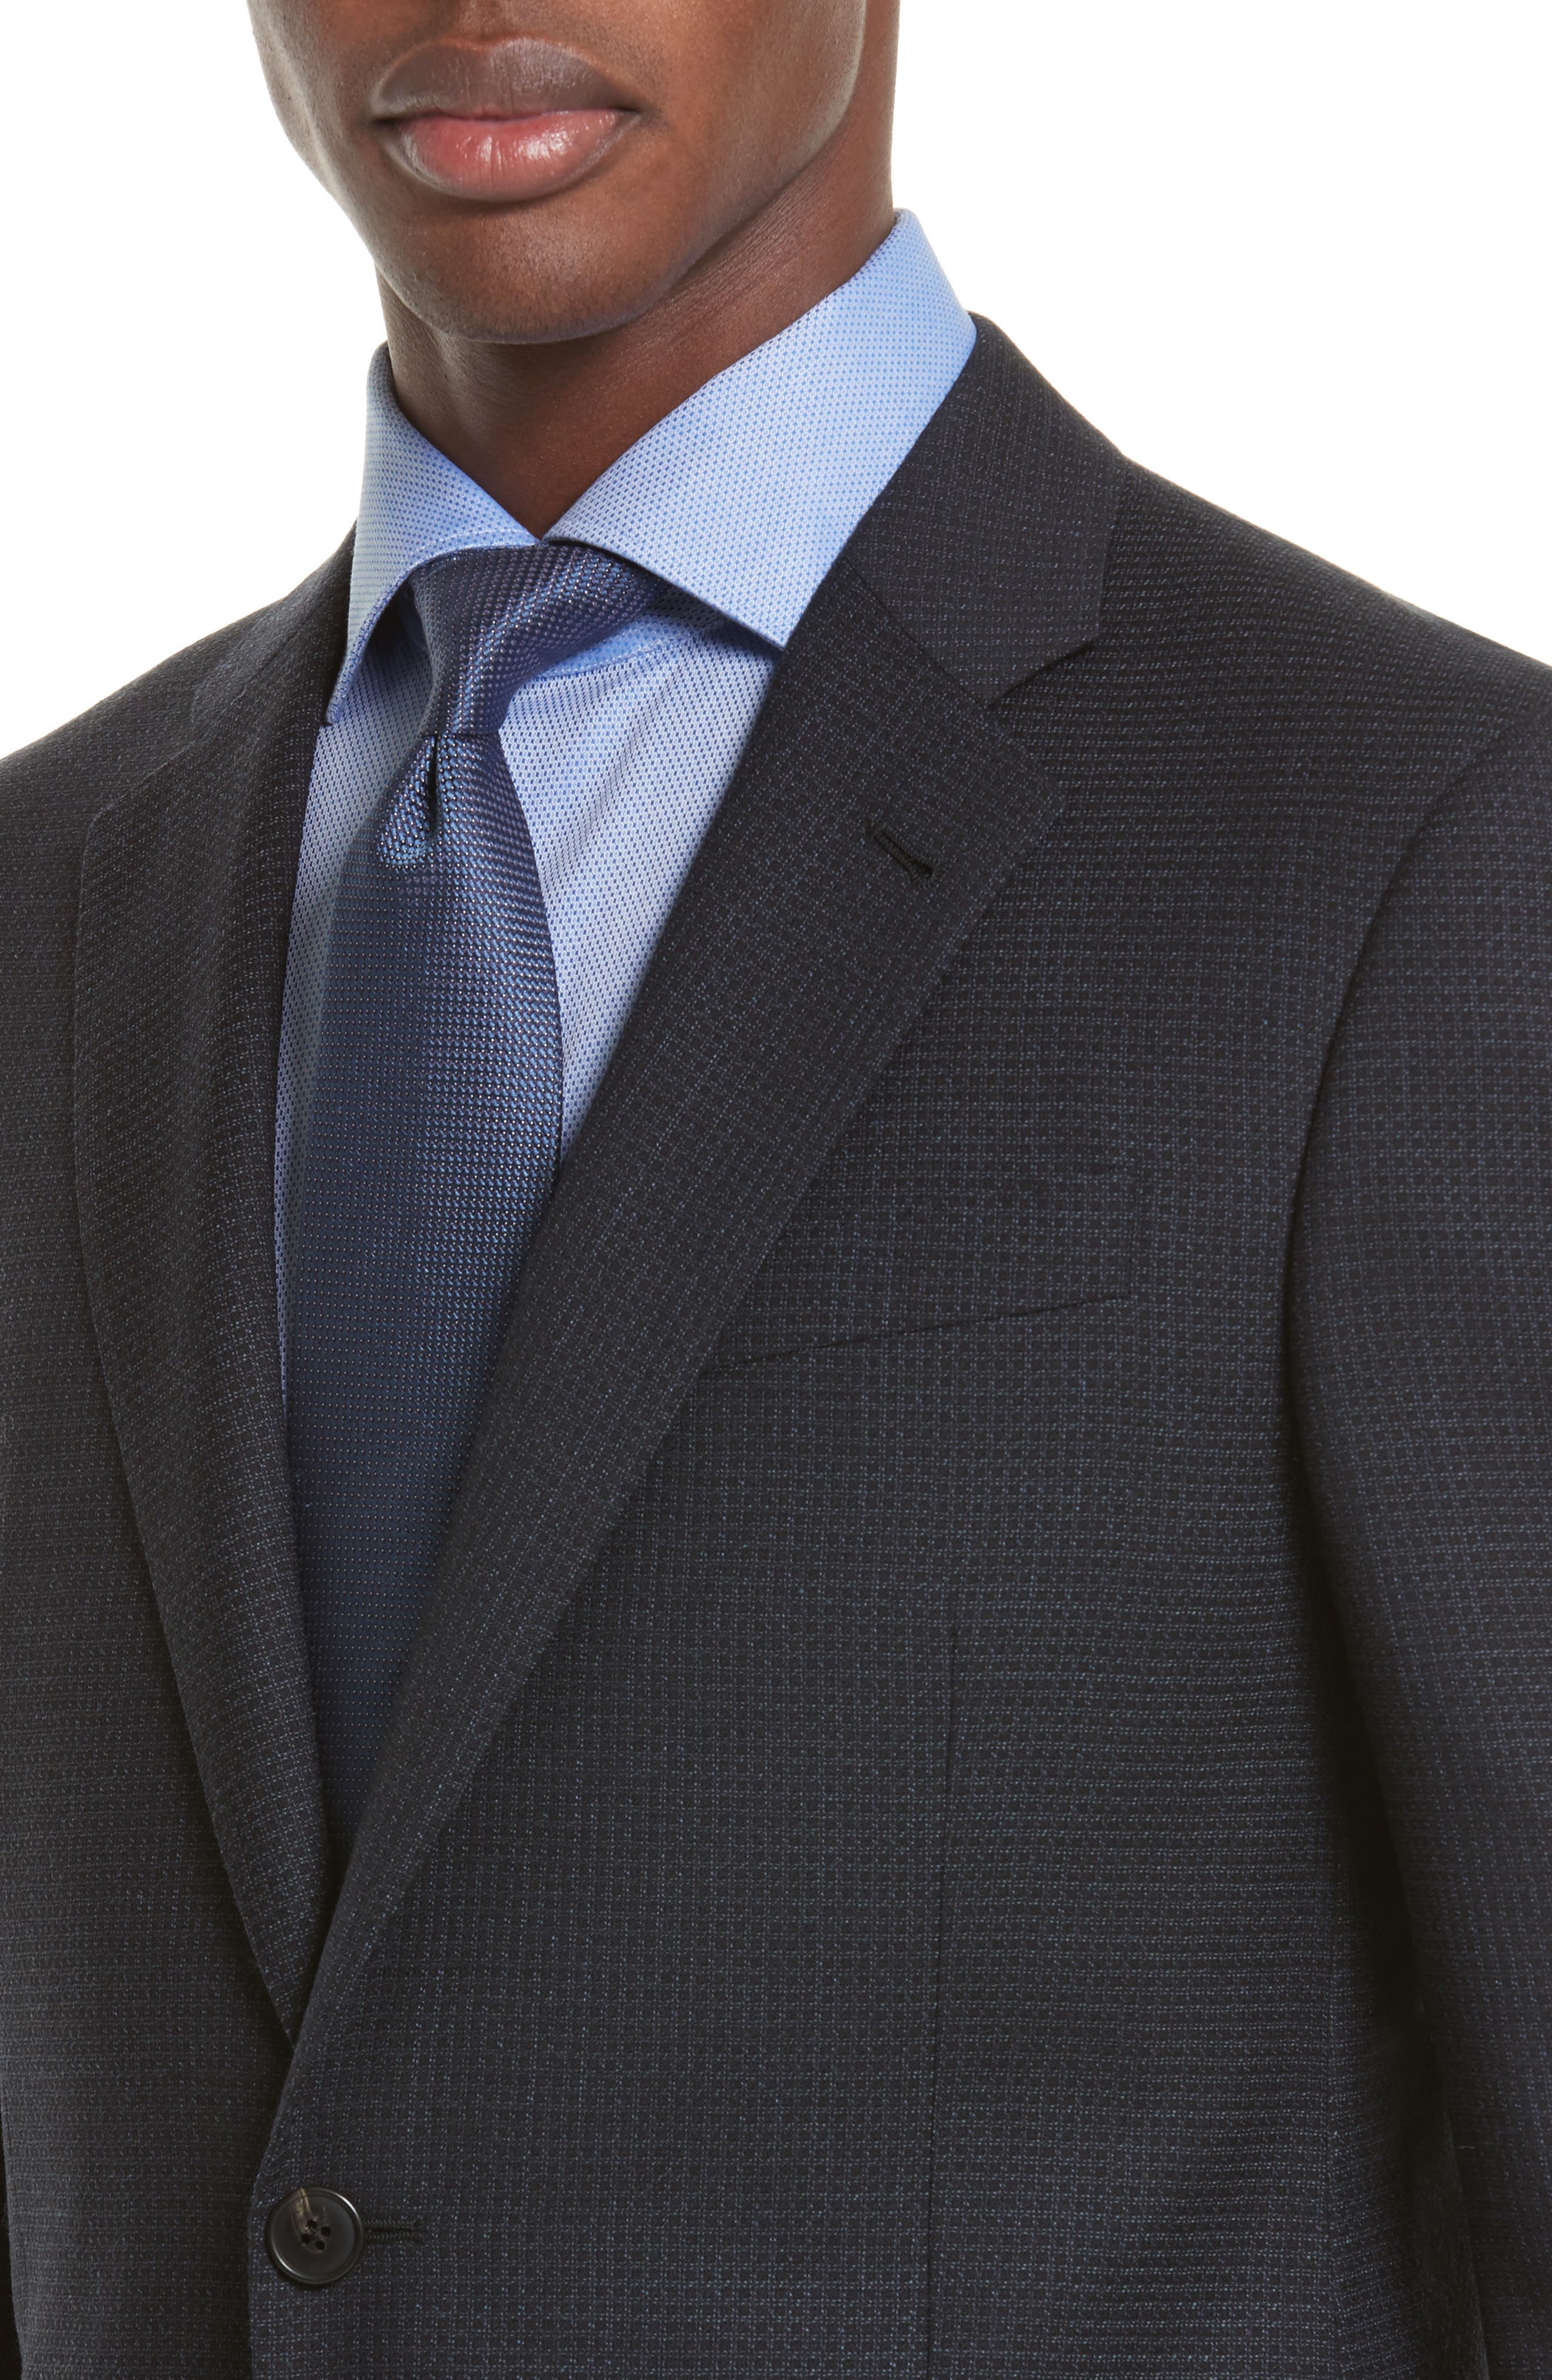 Trim Fit Check Wool Sport Coat,                             Alternate thumbnail 4, color,                             Navy